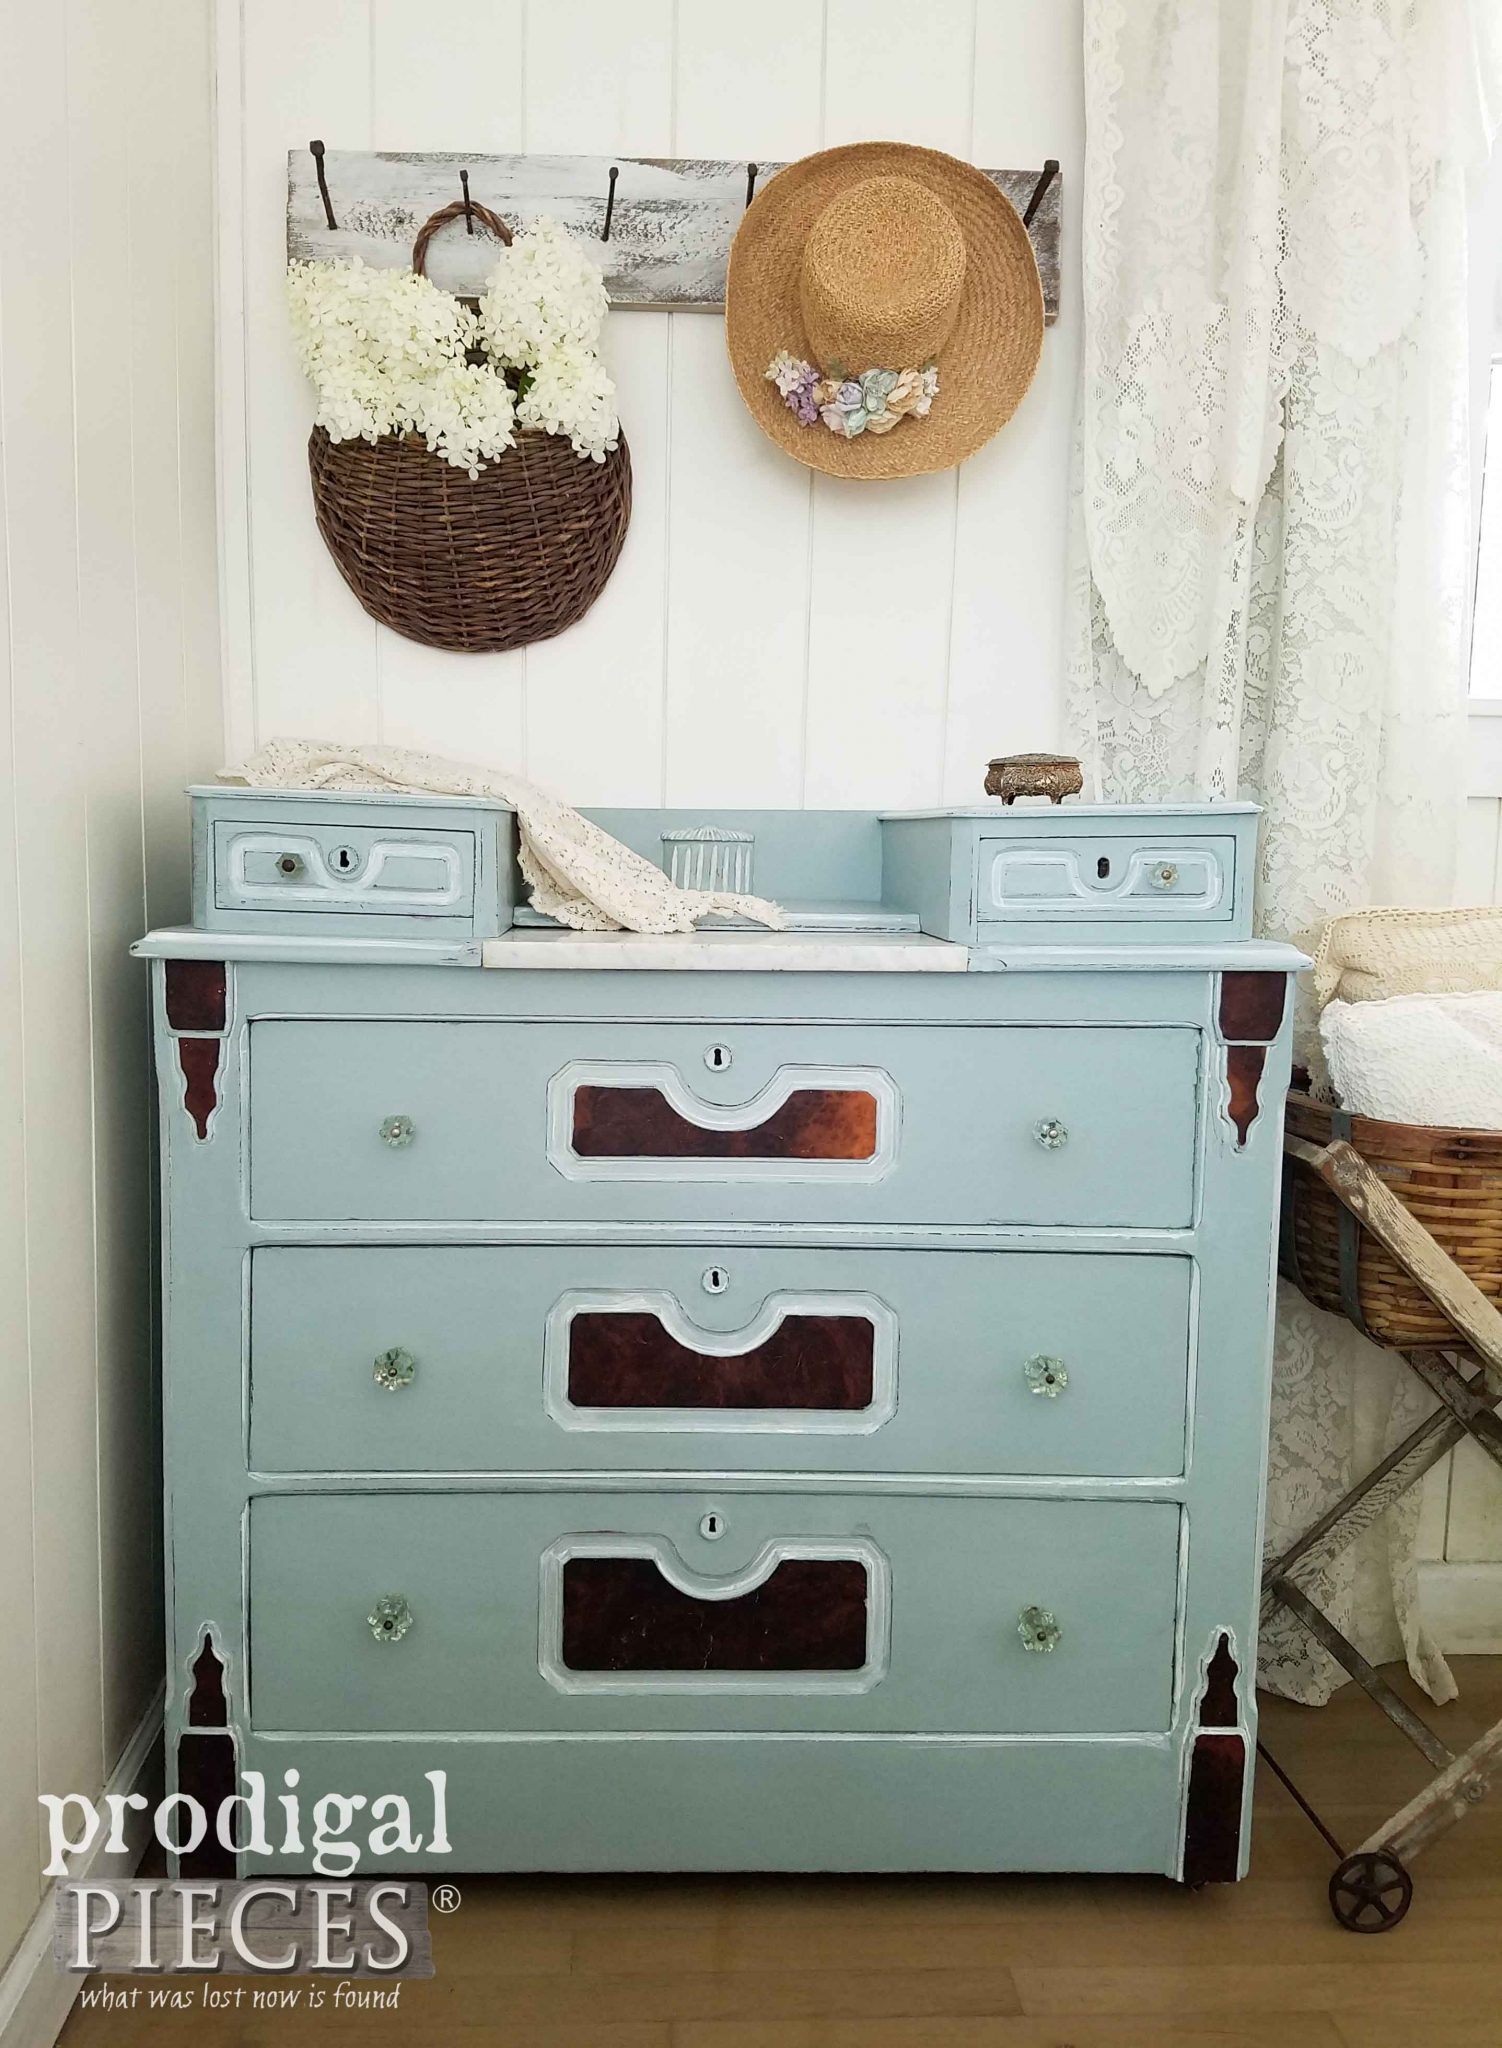 Antique Chest Dresser Given New Life by Prodigal Pieces | prodigalpieces.com